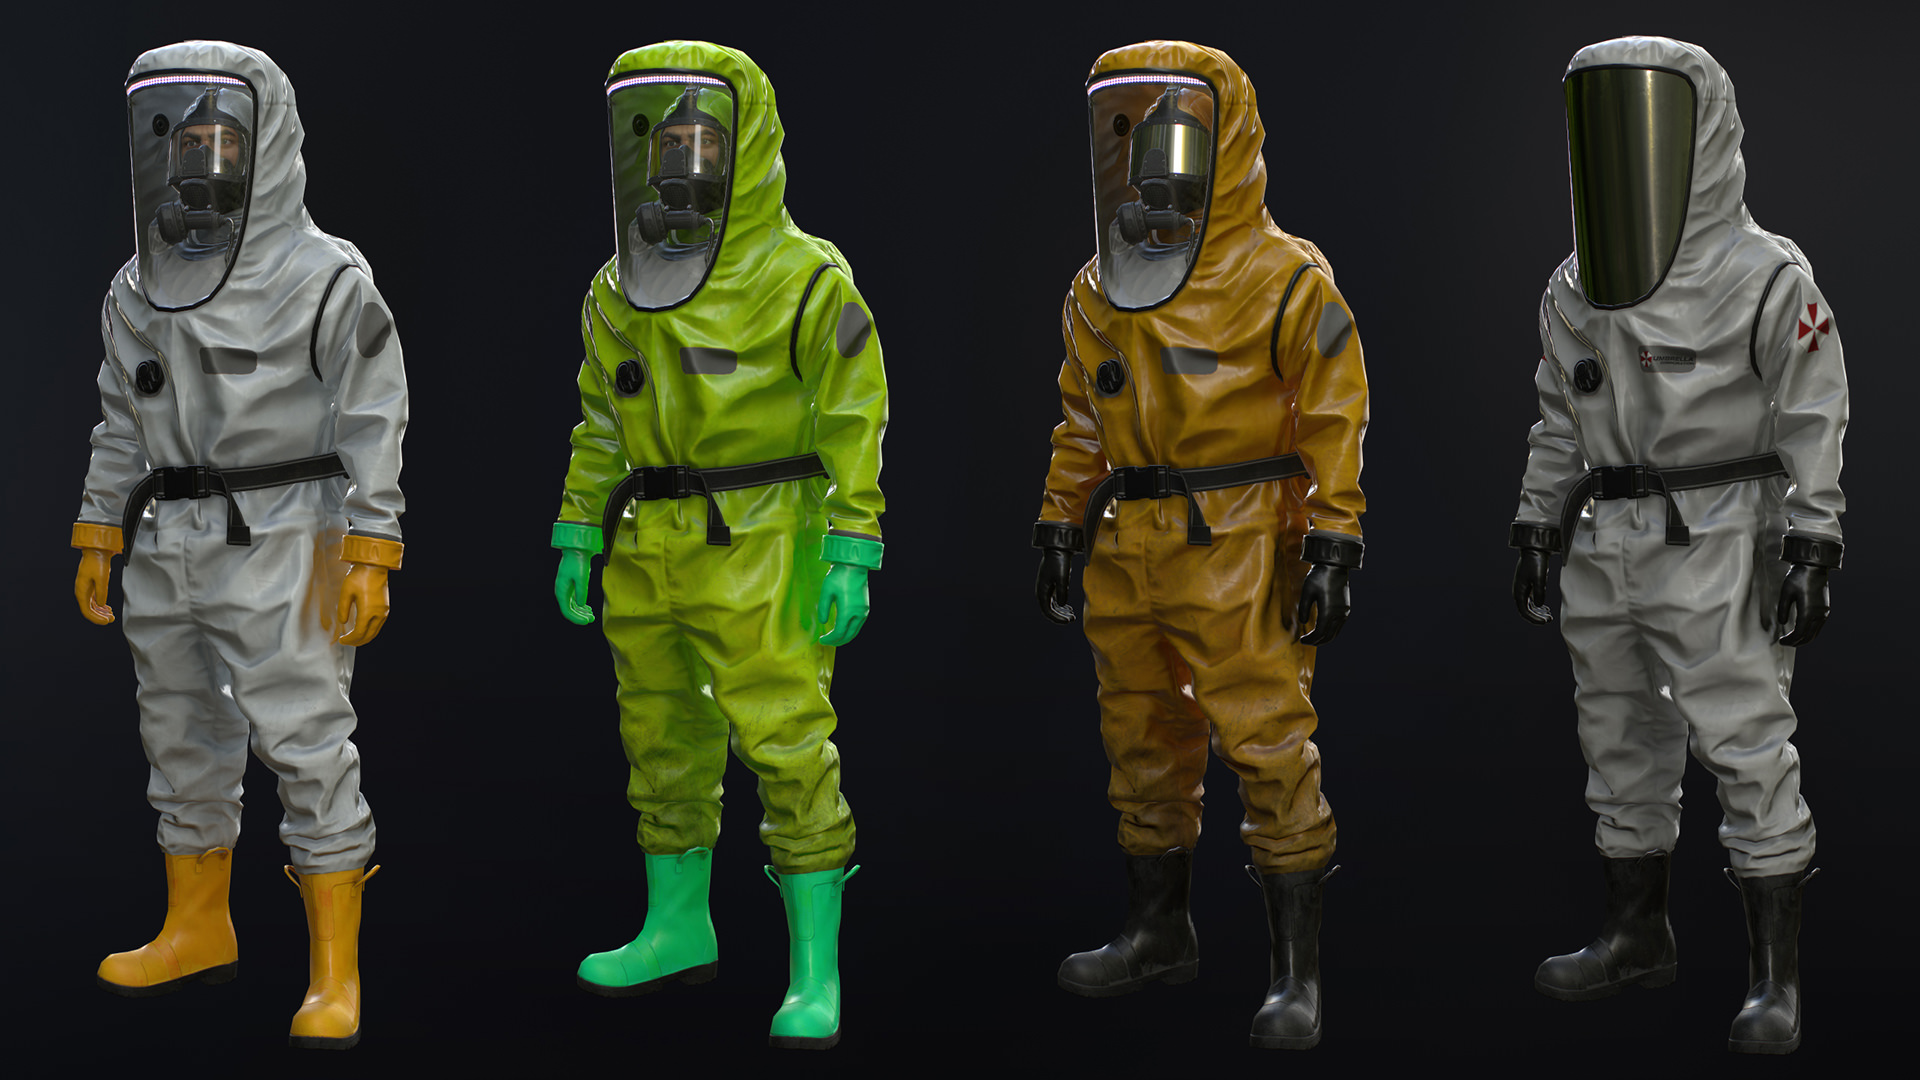 Level A Hazmat suits with gastight zippers